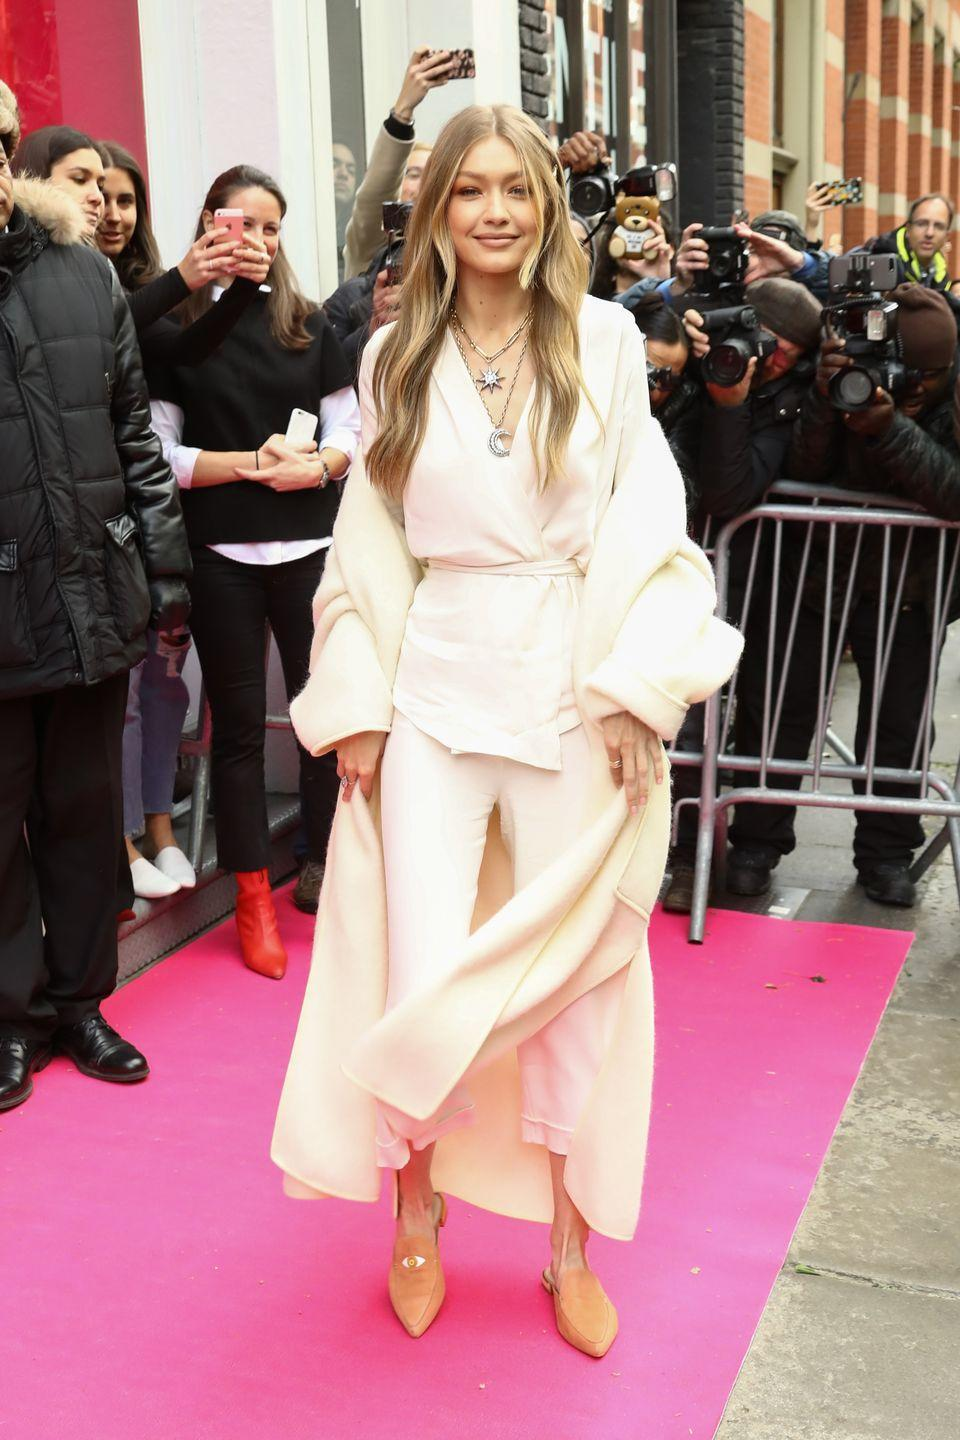 """<p>While promoting her new <a href=""""https://www.stuartweitzman.com/products/eyelove/deep-indigo-suede/?cvo_campaign=&utm_campaign=&utm_source=google&utm_medium=cpc&utm_term=stuart%20weitzman%20gigi%20hadid&cvosrc=ppc.google.Stuart%20weitzman%20gigi%20hadid&matchtype=e&cvo_crid=232820759435&gclid=Cj0KCQiAus_QBRDgARIsAIRGNGiwgnT1vo2qFAj5kB7CO22GFtBnDRmvrLVXUrFQLvQ8O-0ZaPooGTEaAuyMEALw_wcB&ef_id=WbGH2gAAAIMg2kX5:20171121160148:s"""" rel=""""nofollow noopener"""" target=""""_blank"""" data-ylk=""""slk:shoe collection with Stuart Weitzman"""" class=""""link rapid-noclick-resp"""">shoe collection with Stuart Weitzman</a>, Gigi walked the red carpet in an all-white ensemble tied together with what's basically a fluffy bath robe. I'm living for this level of comfy. </p>"""